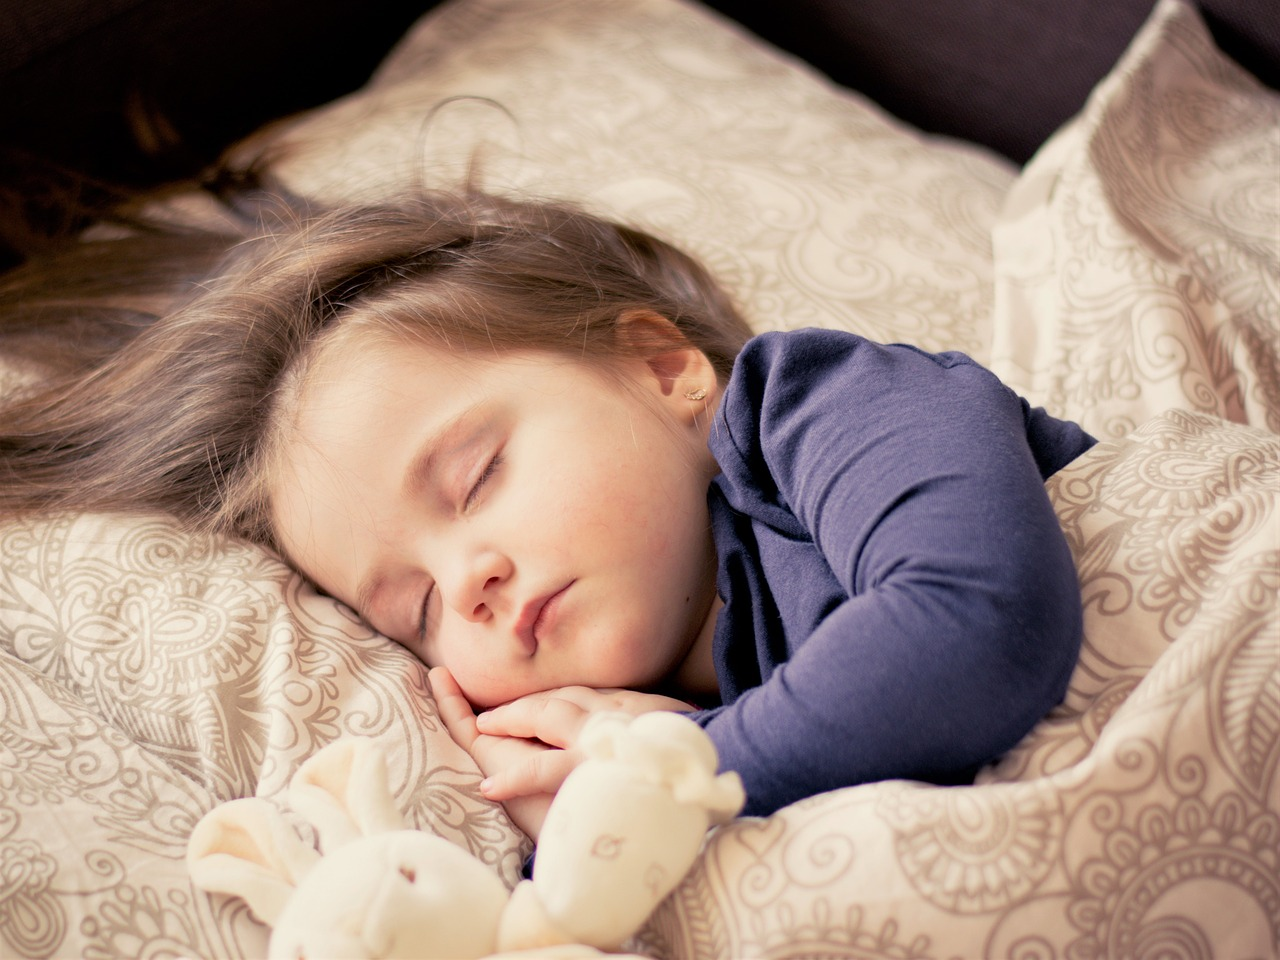 7. Get the right amount of sleep -